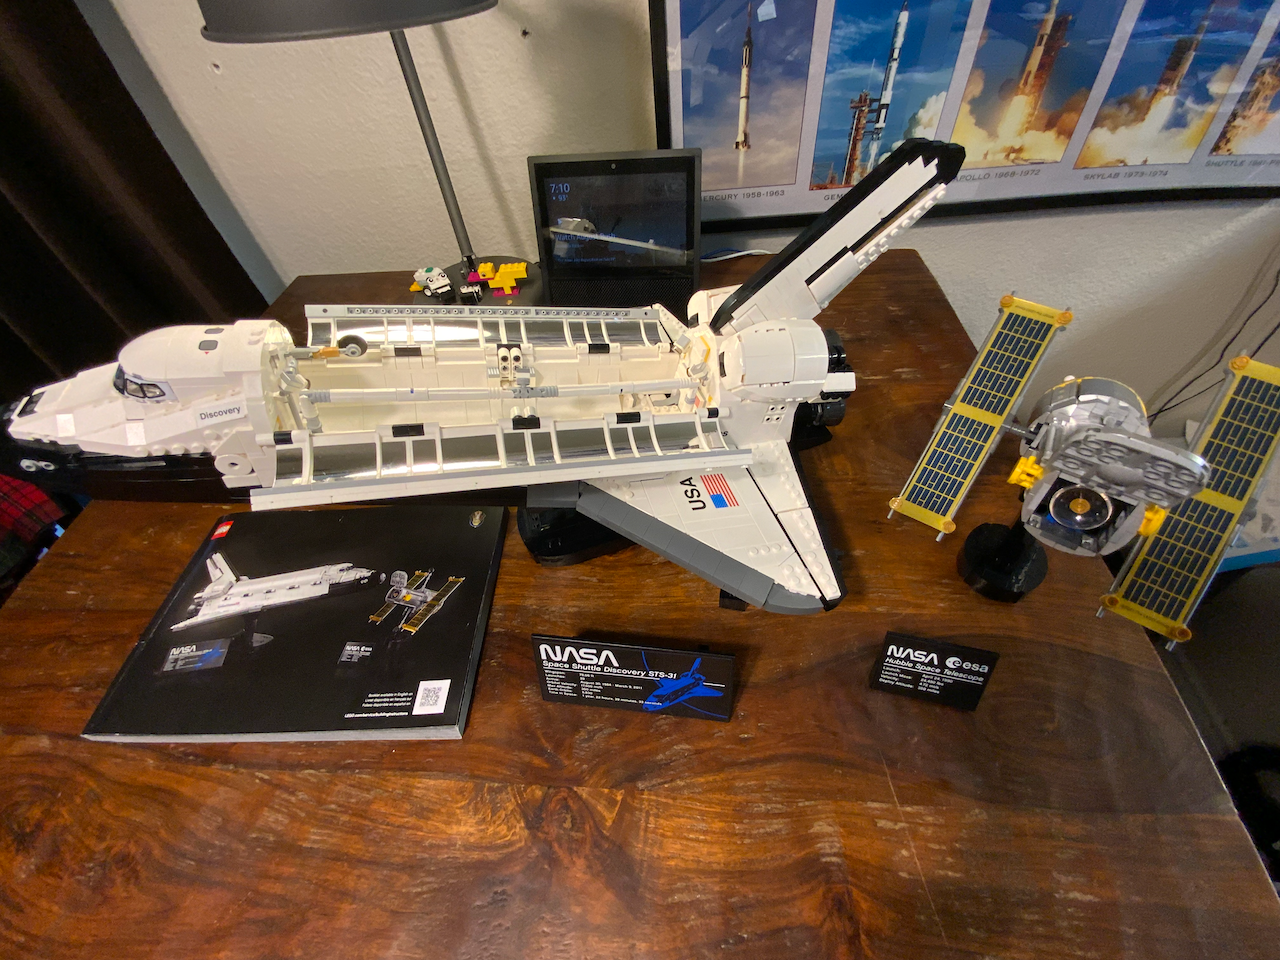 2021-06-24 LEGO Space Shuttle Discovery build